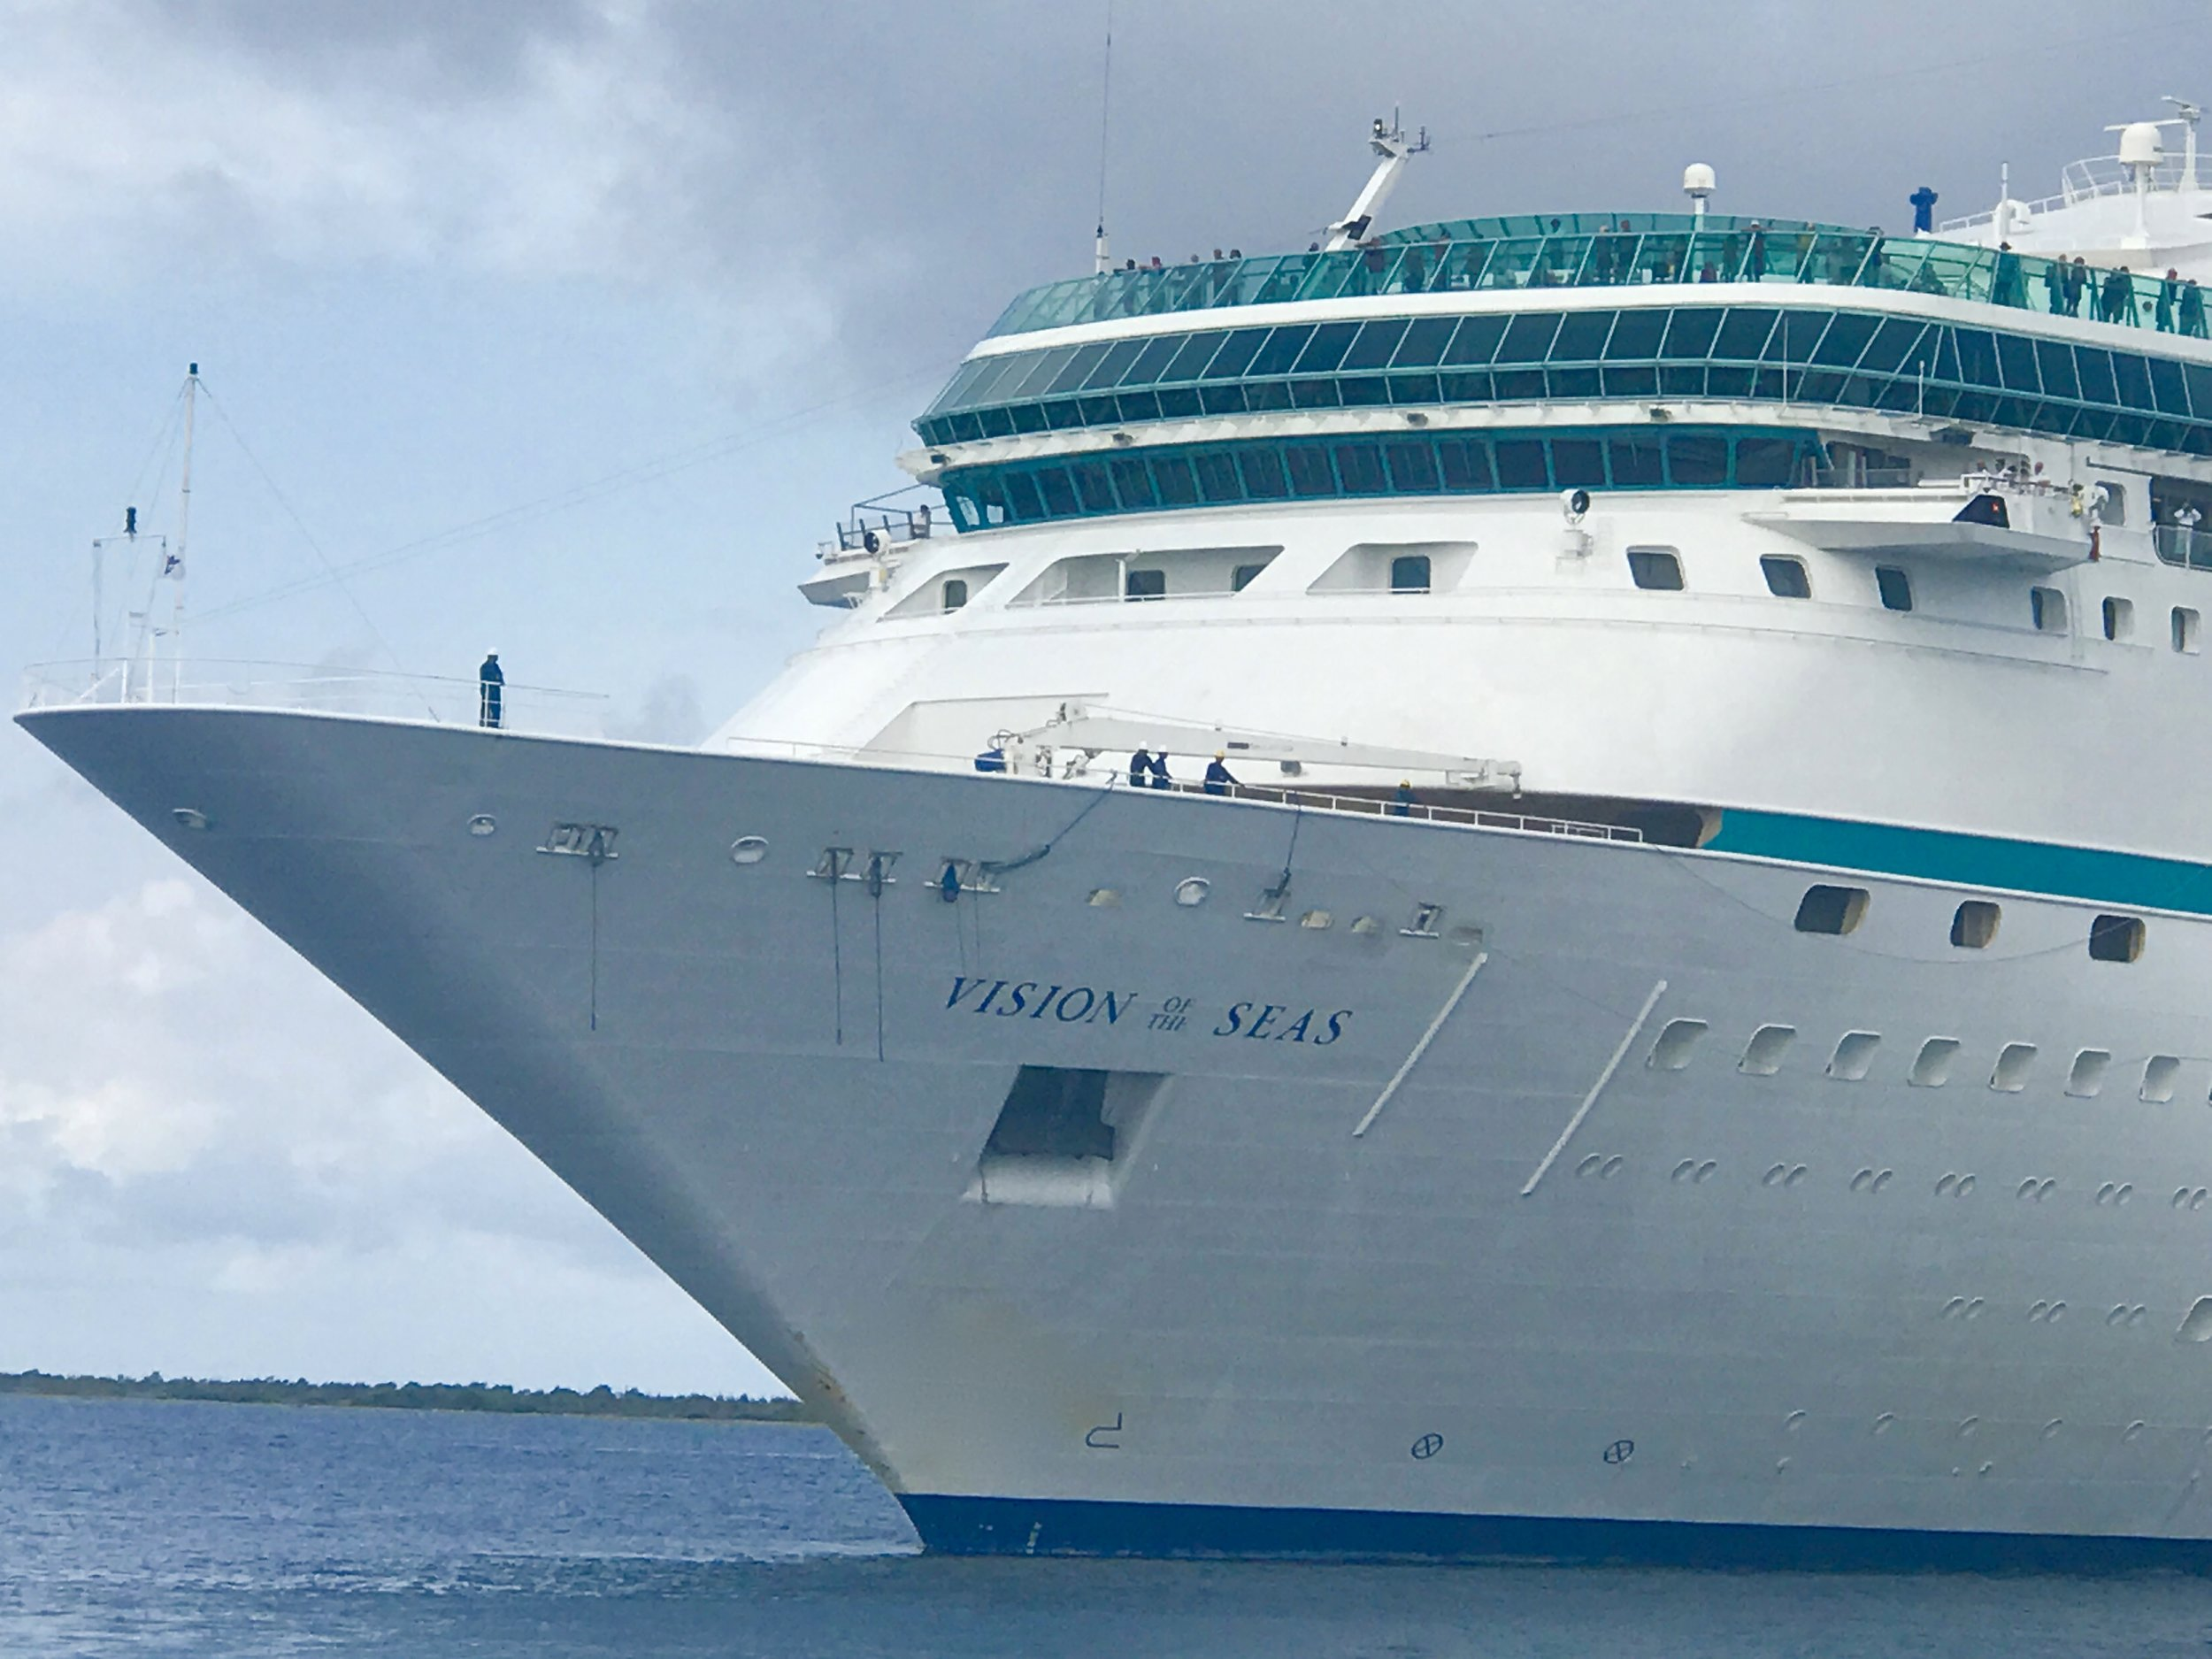 Vision of the Seas sailing into Bonaire's harbour